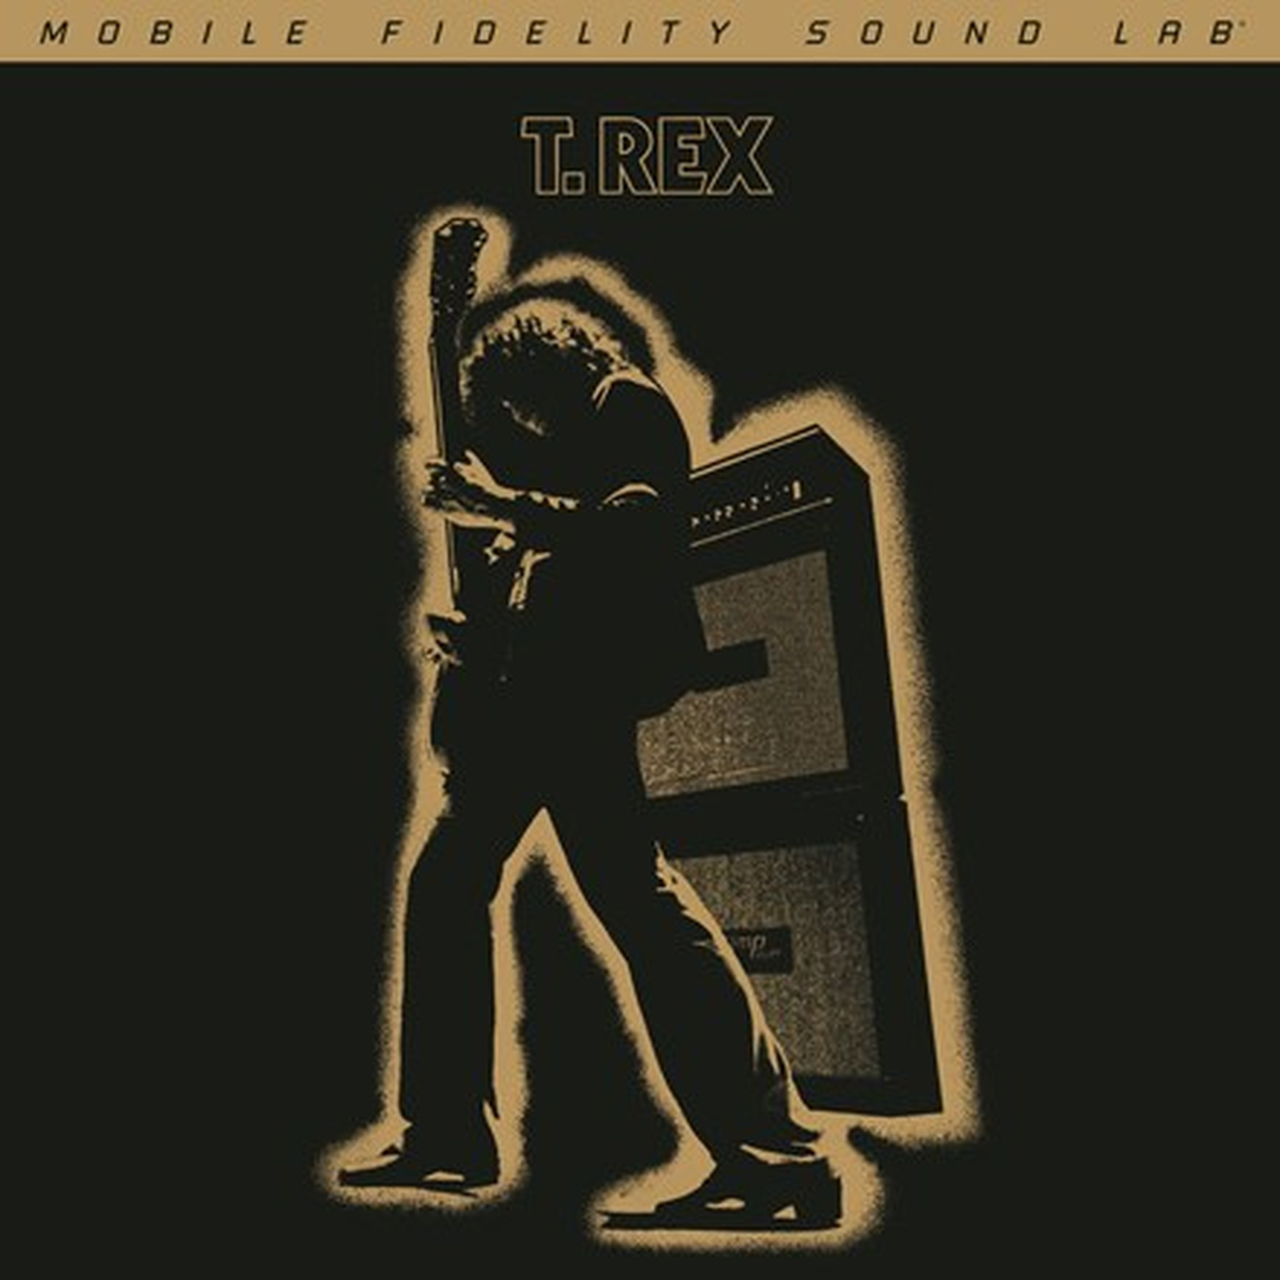 T. Rex Electric Warrior - издание на 45 оборотов от Mobile Fidelity